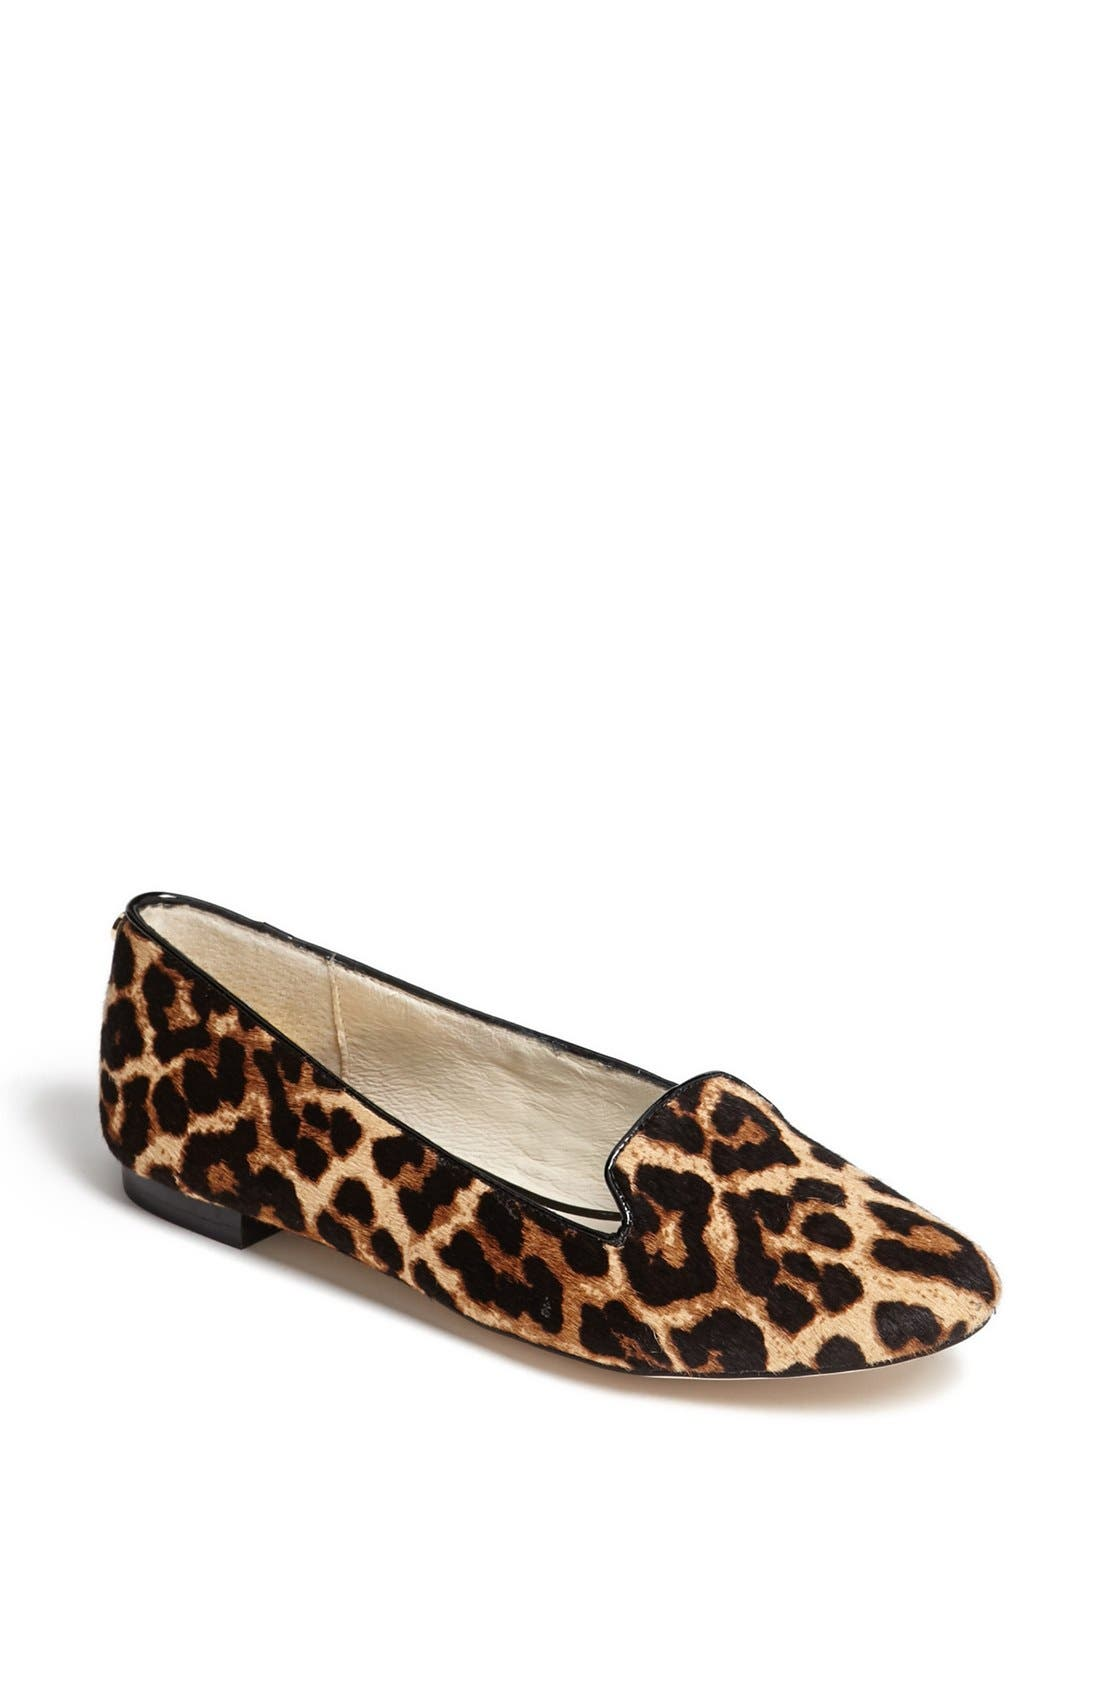 Alternate Image 1 Selected - MICHAEL Michael Kors 'Ailee' Flat